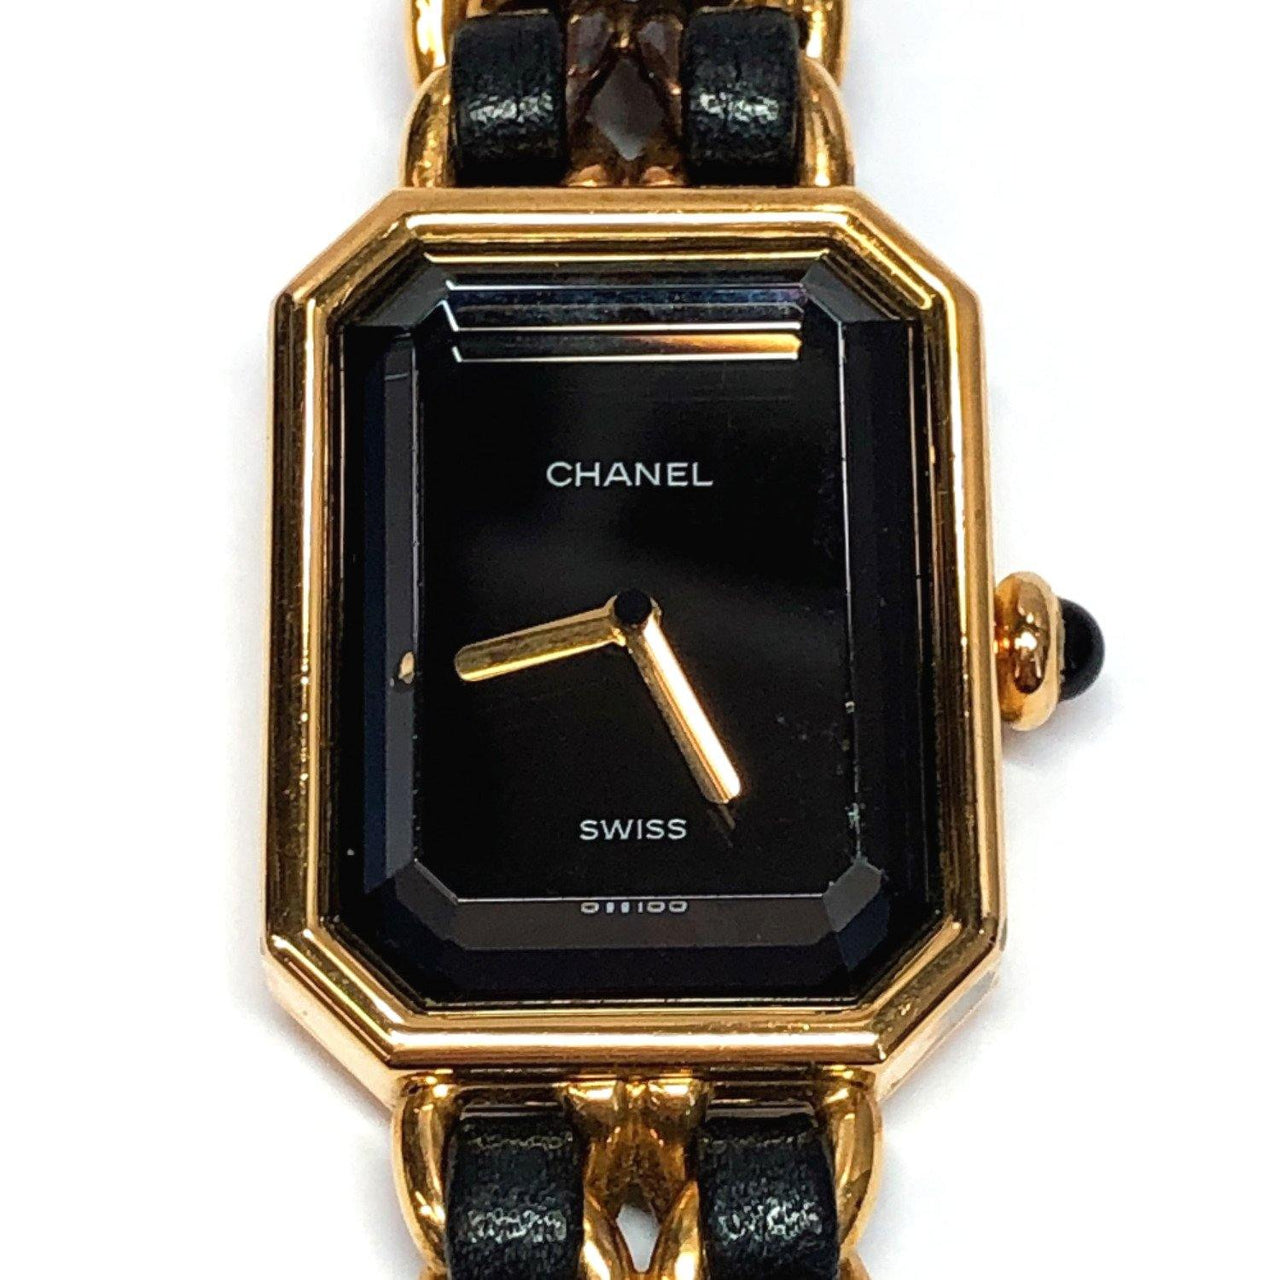 CHANEL Watches H0001 Premiere M vintage metal/leather gold black Women Used - JP-BRANDS.com